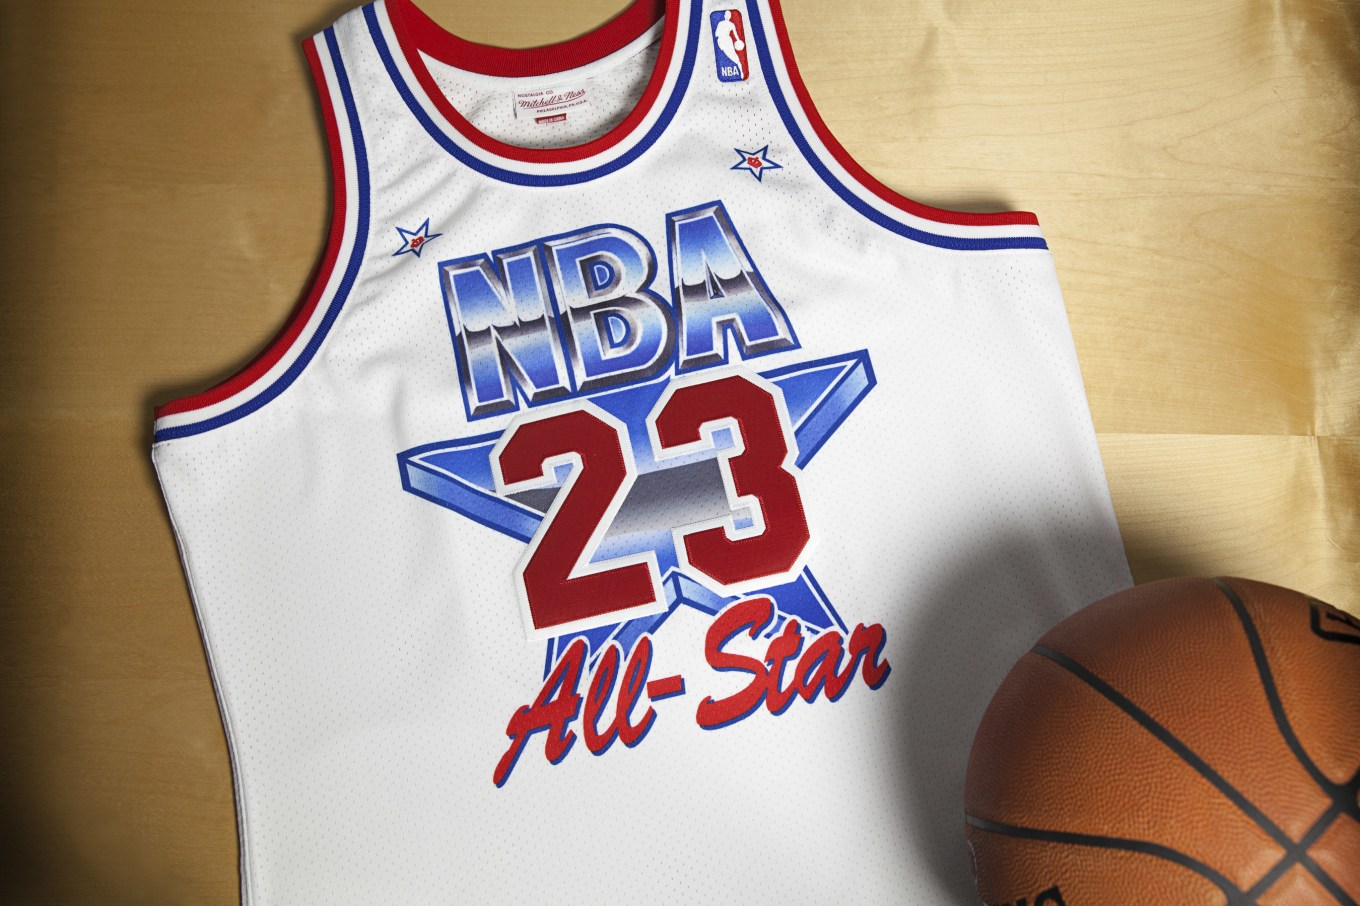 Jordan All Star jersey.jpeg